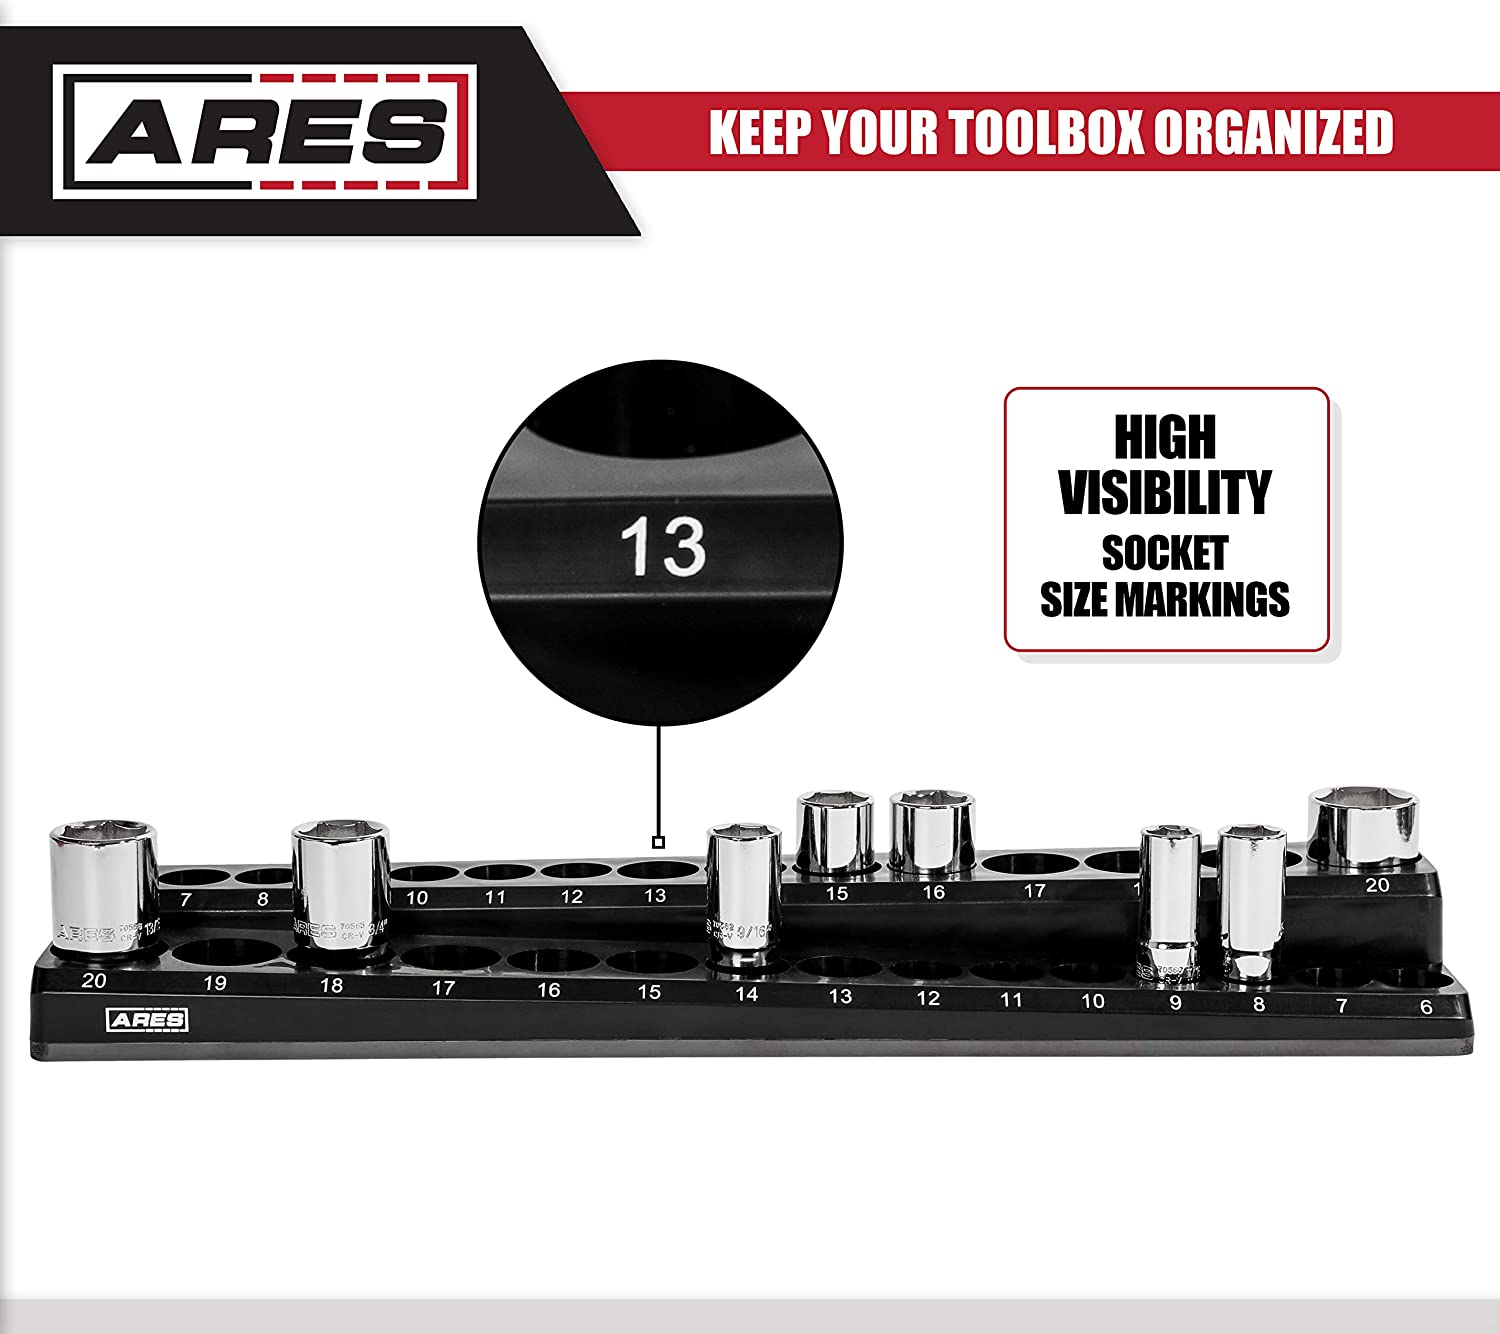 30-Piece 3//8-Inch Metric Magnetic Socket Holder ARES 70235 Securely Holds 15 Standard and 15 Deep Size Sockets In Place Keeps Your Tool Box Organized